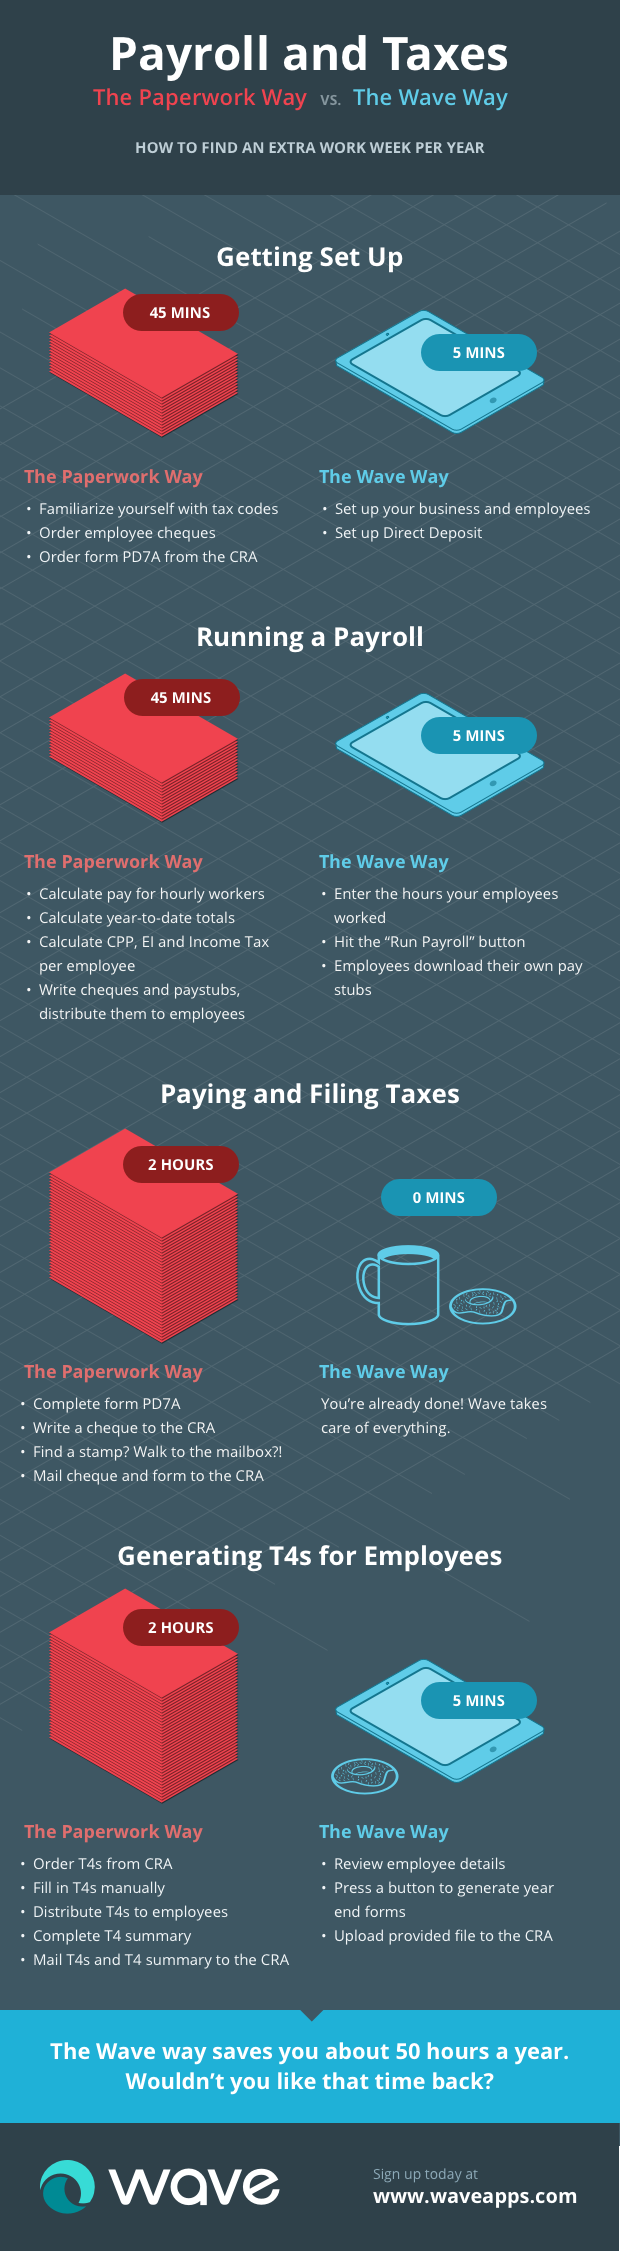 payroll by wave say goodbye to manual payroll in 2016 bravely go